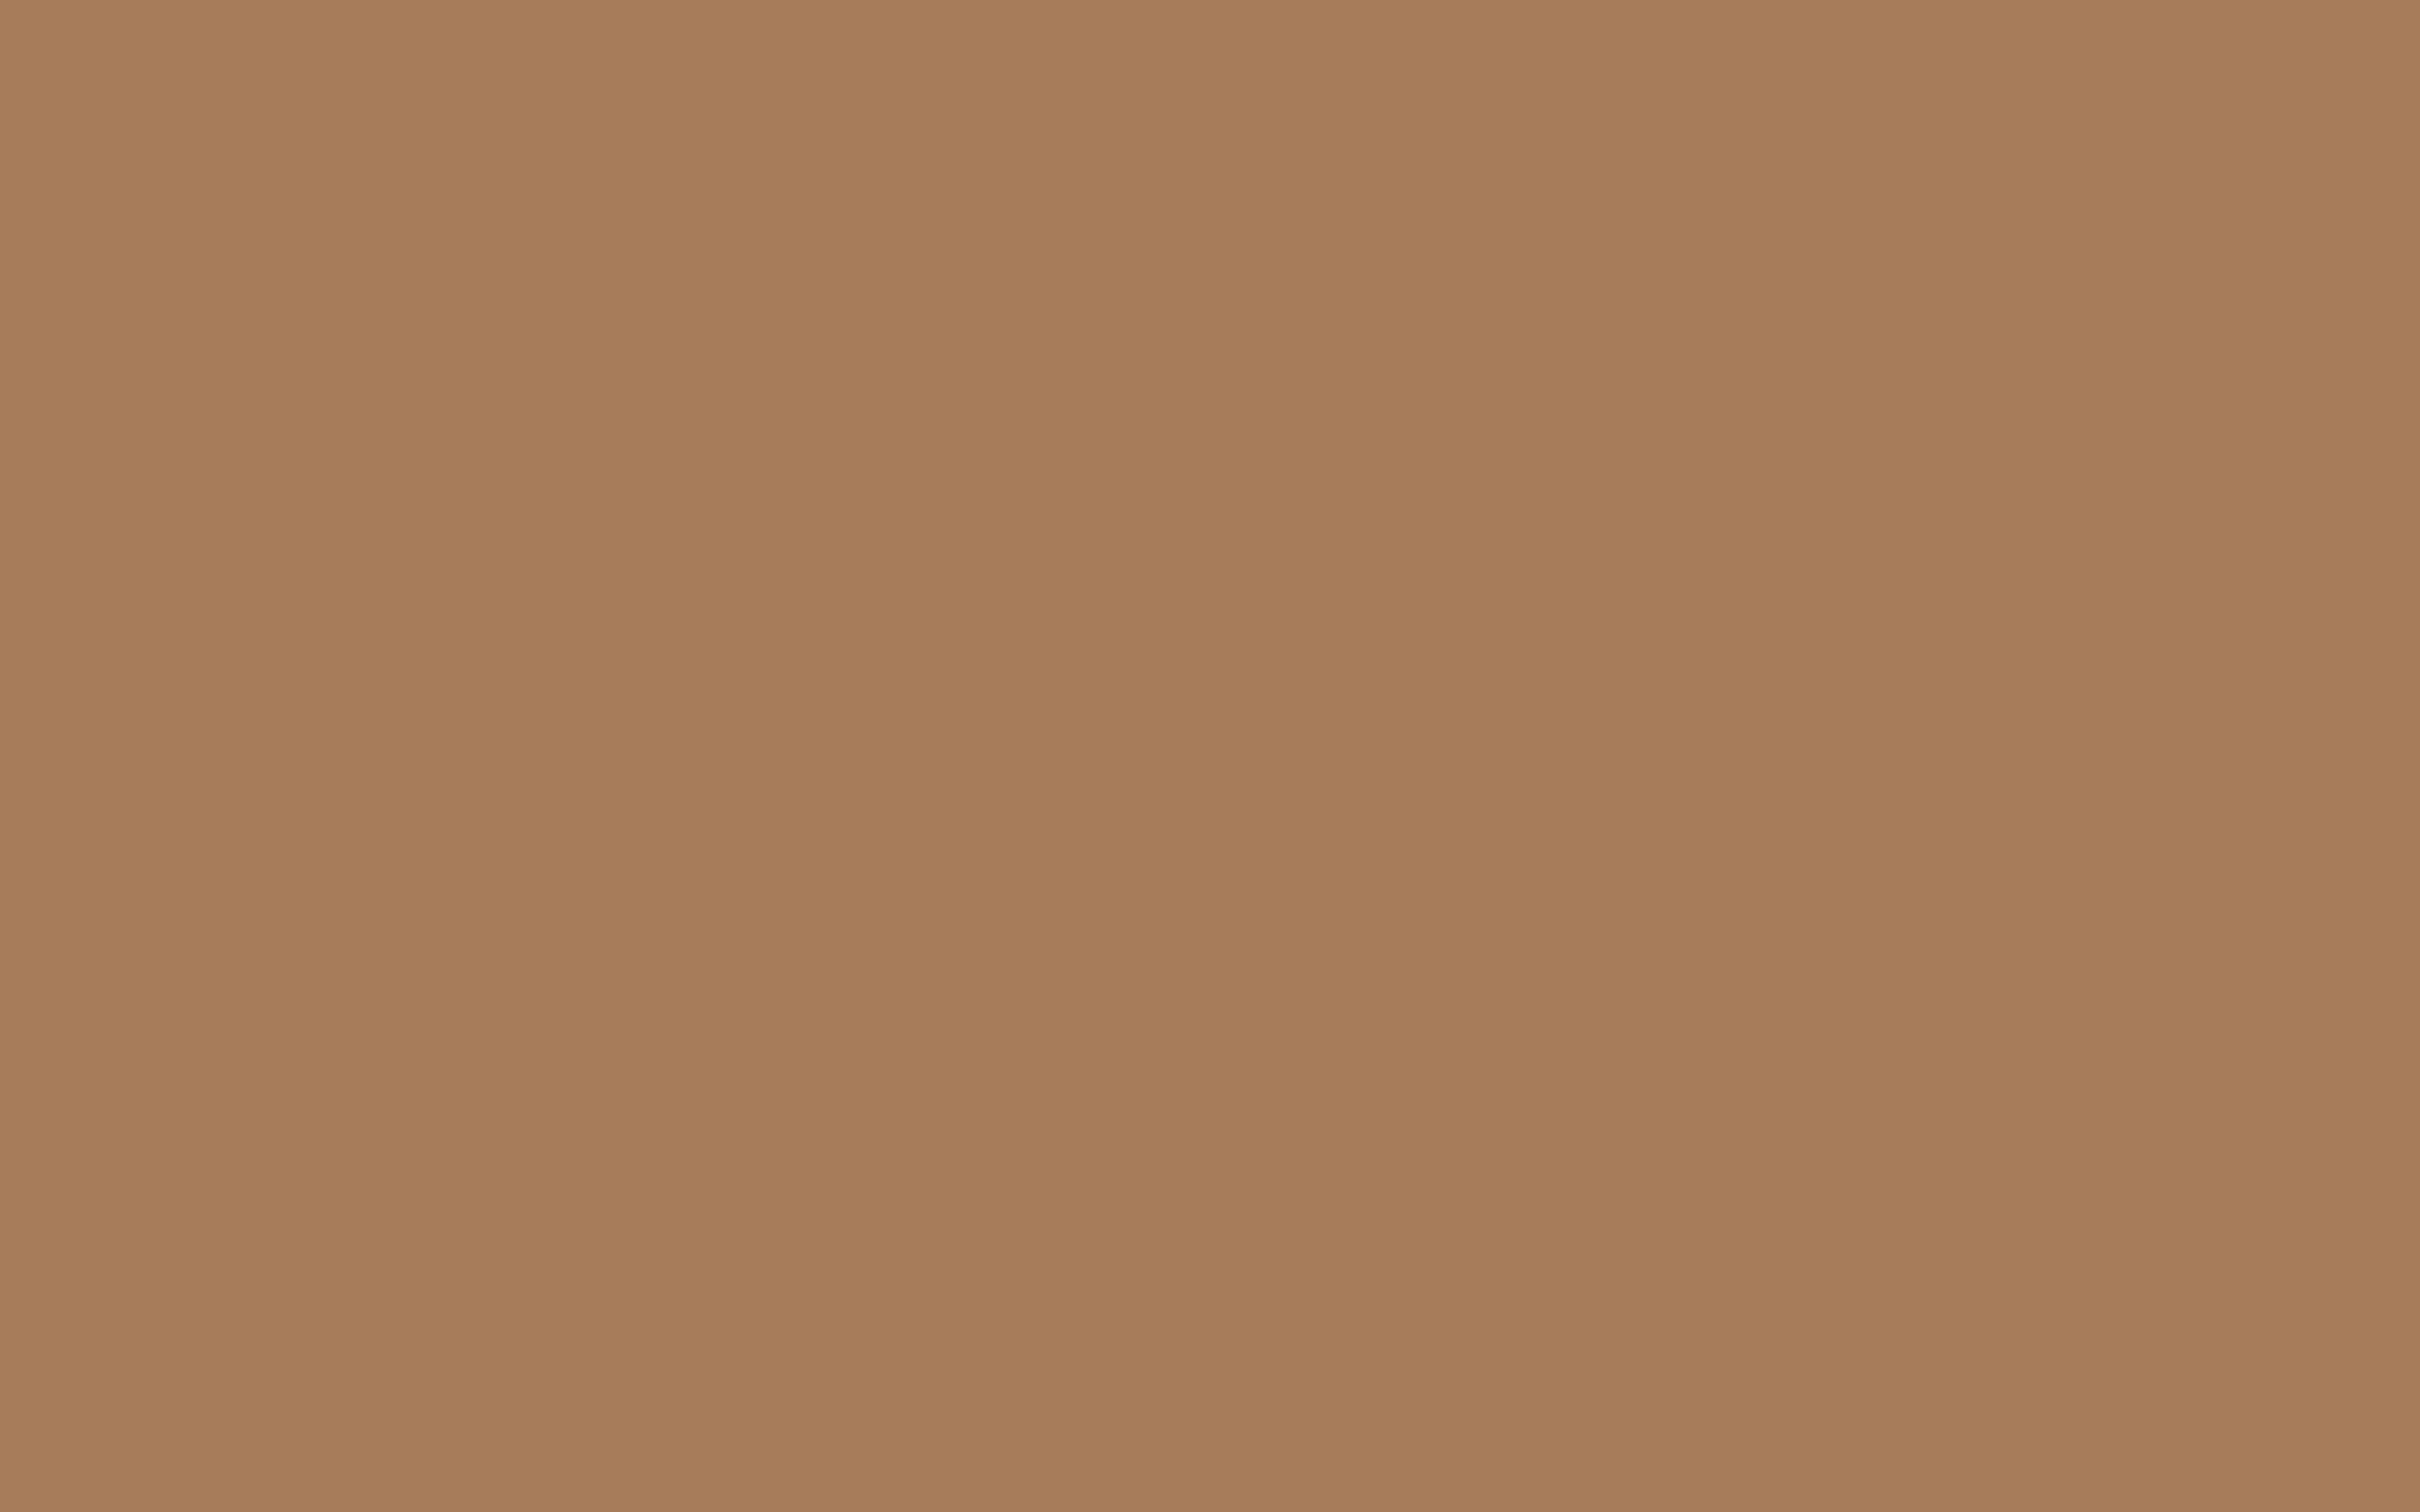 2560x1600 Tuscan Tan Solid Color Background